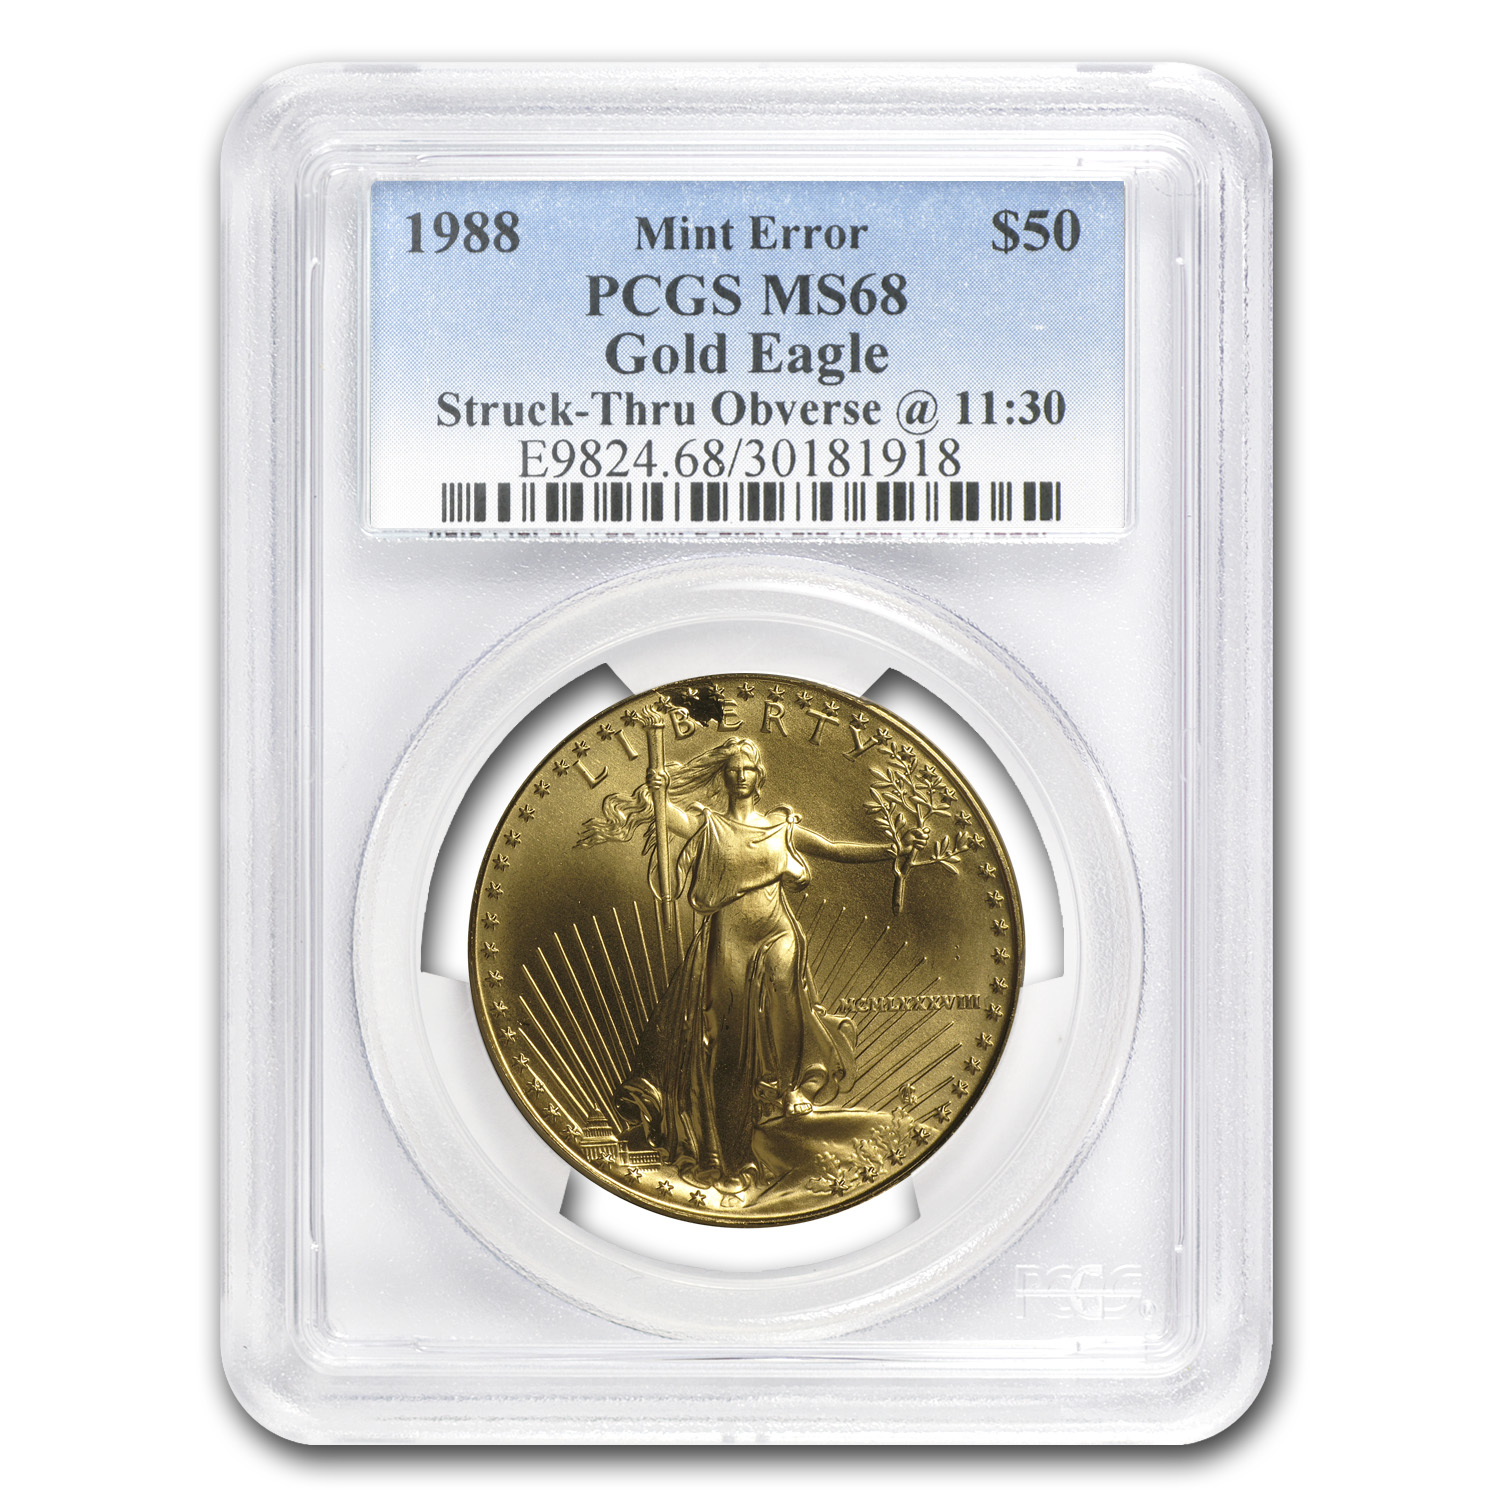 "1988 1 oz Gold Eagle Mint Error PCGS MS-68 ""Obv Struck Thru"""